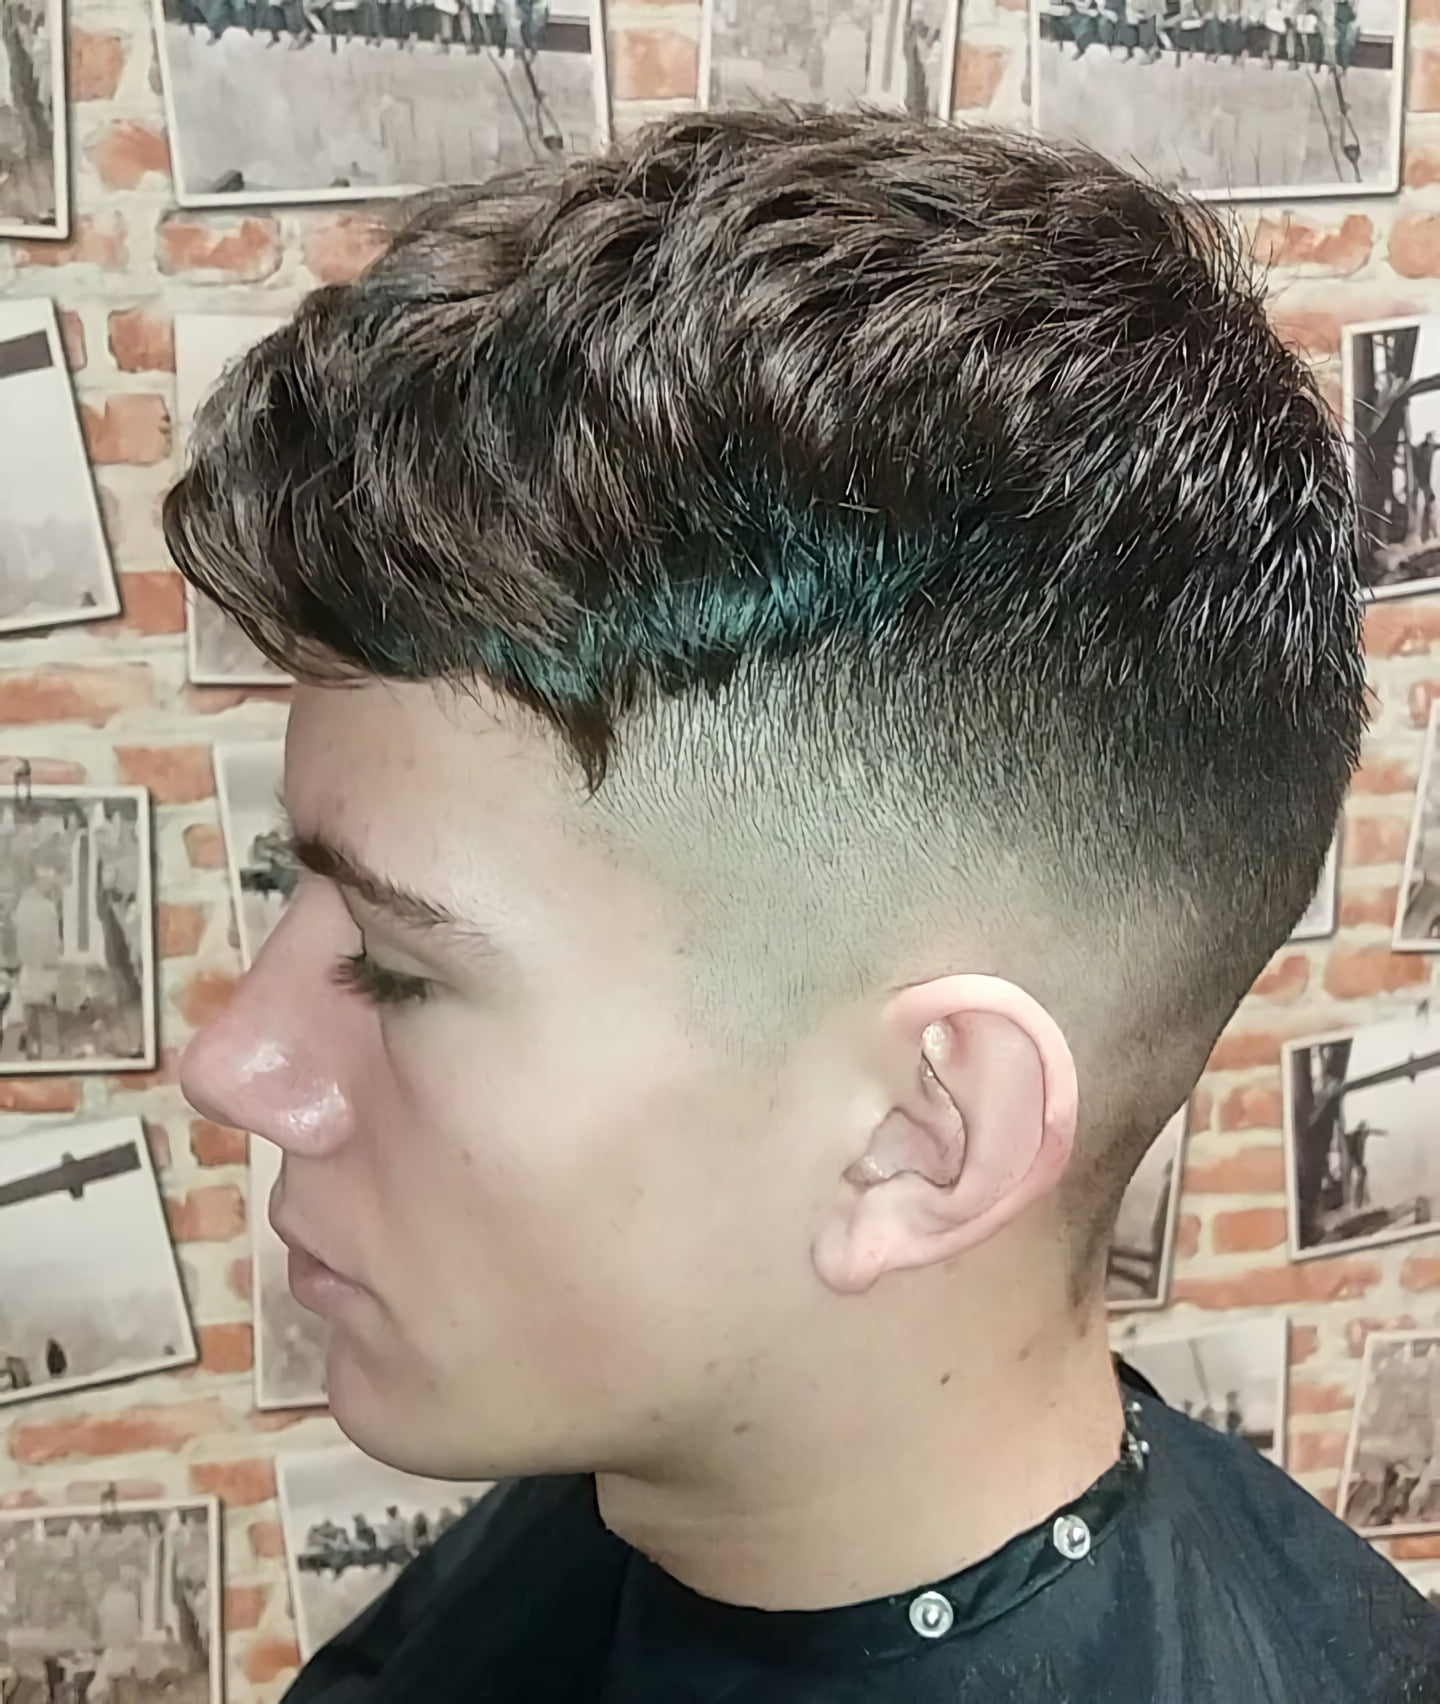 Fade with Textured Medium Length Hair on Top